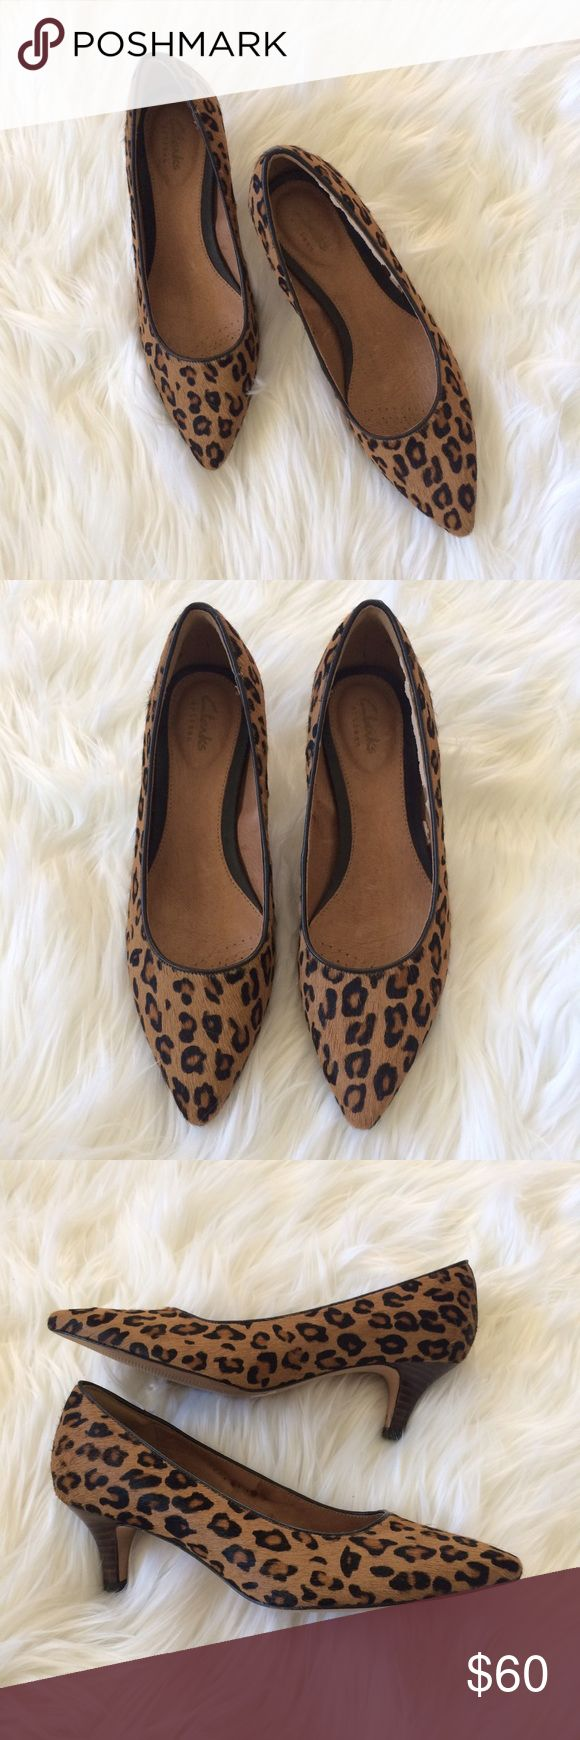 Selling this Clarks Cheetah Heels on Poshmark! My username is: britt_popp. #shopmycloset #poshmark #fashion #shopping #style #forsale #Clarks #Shoes